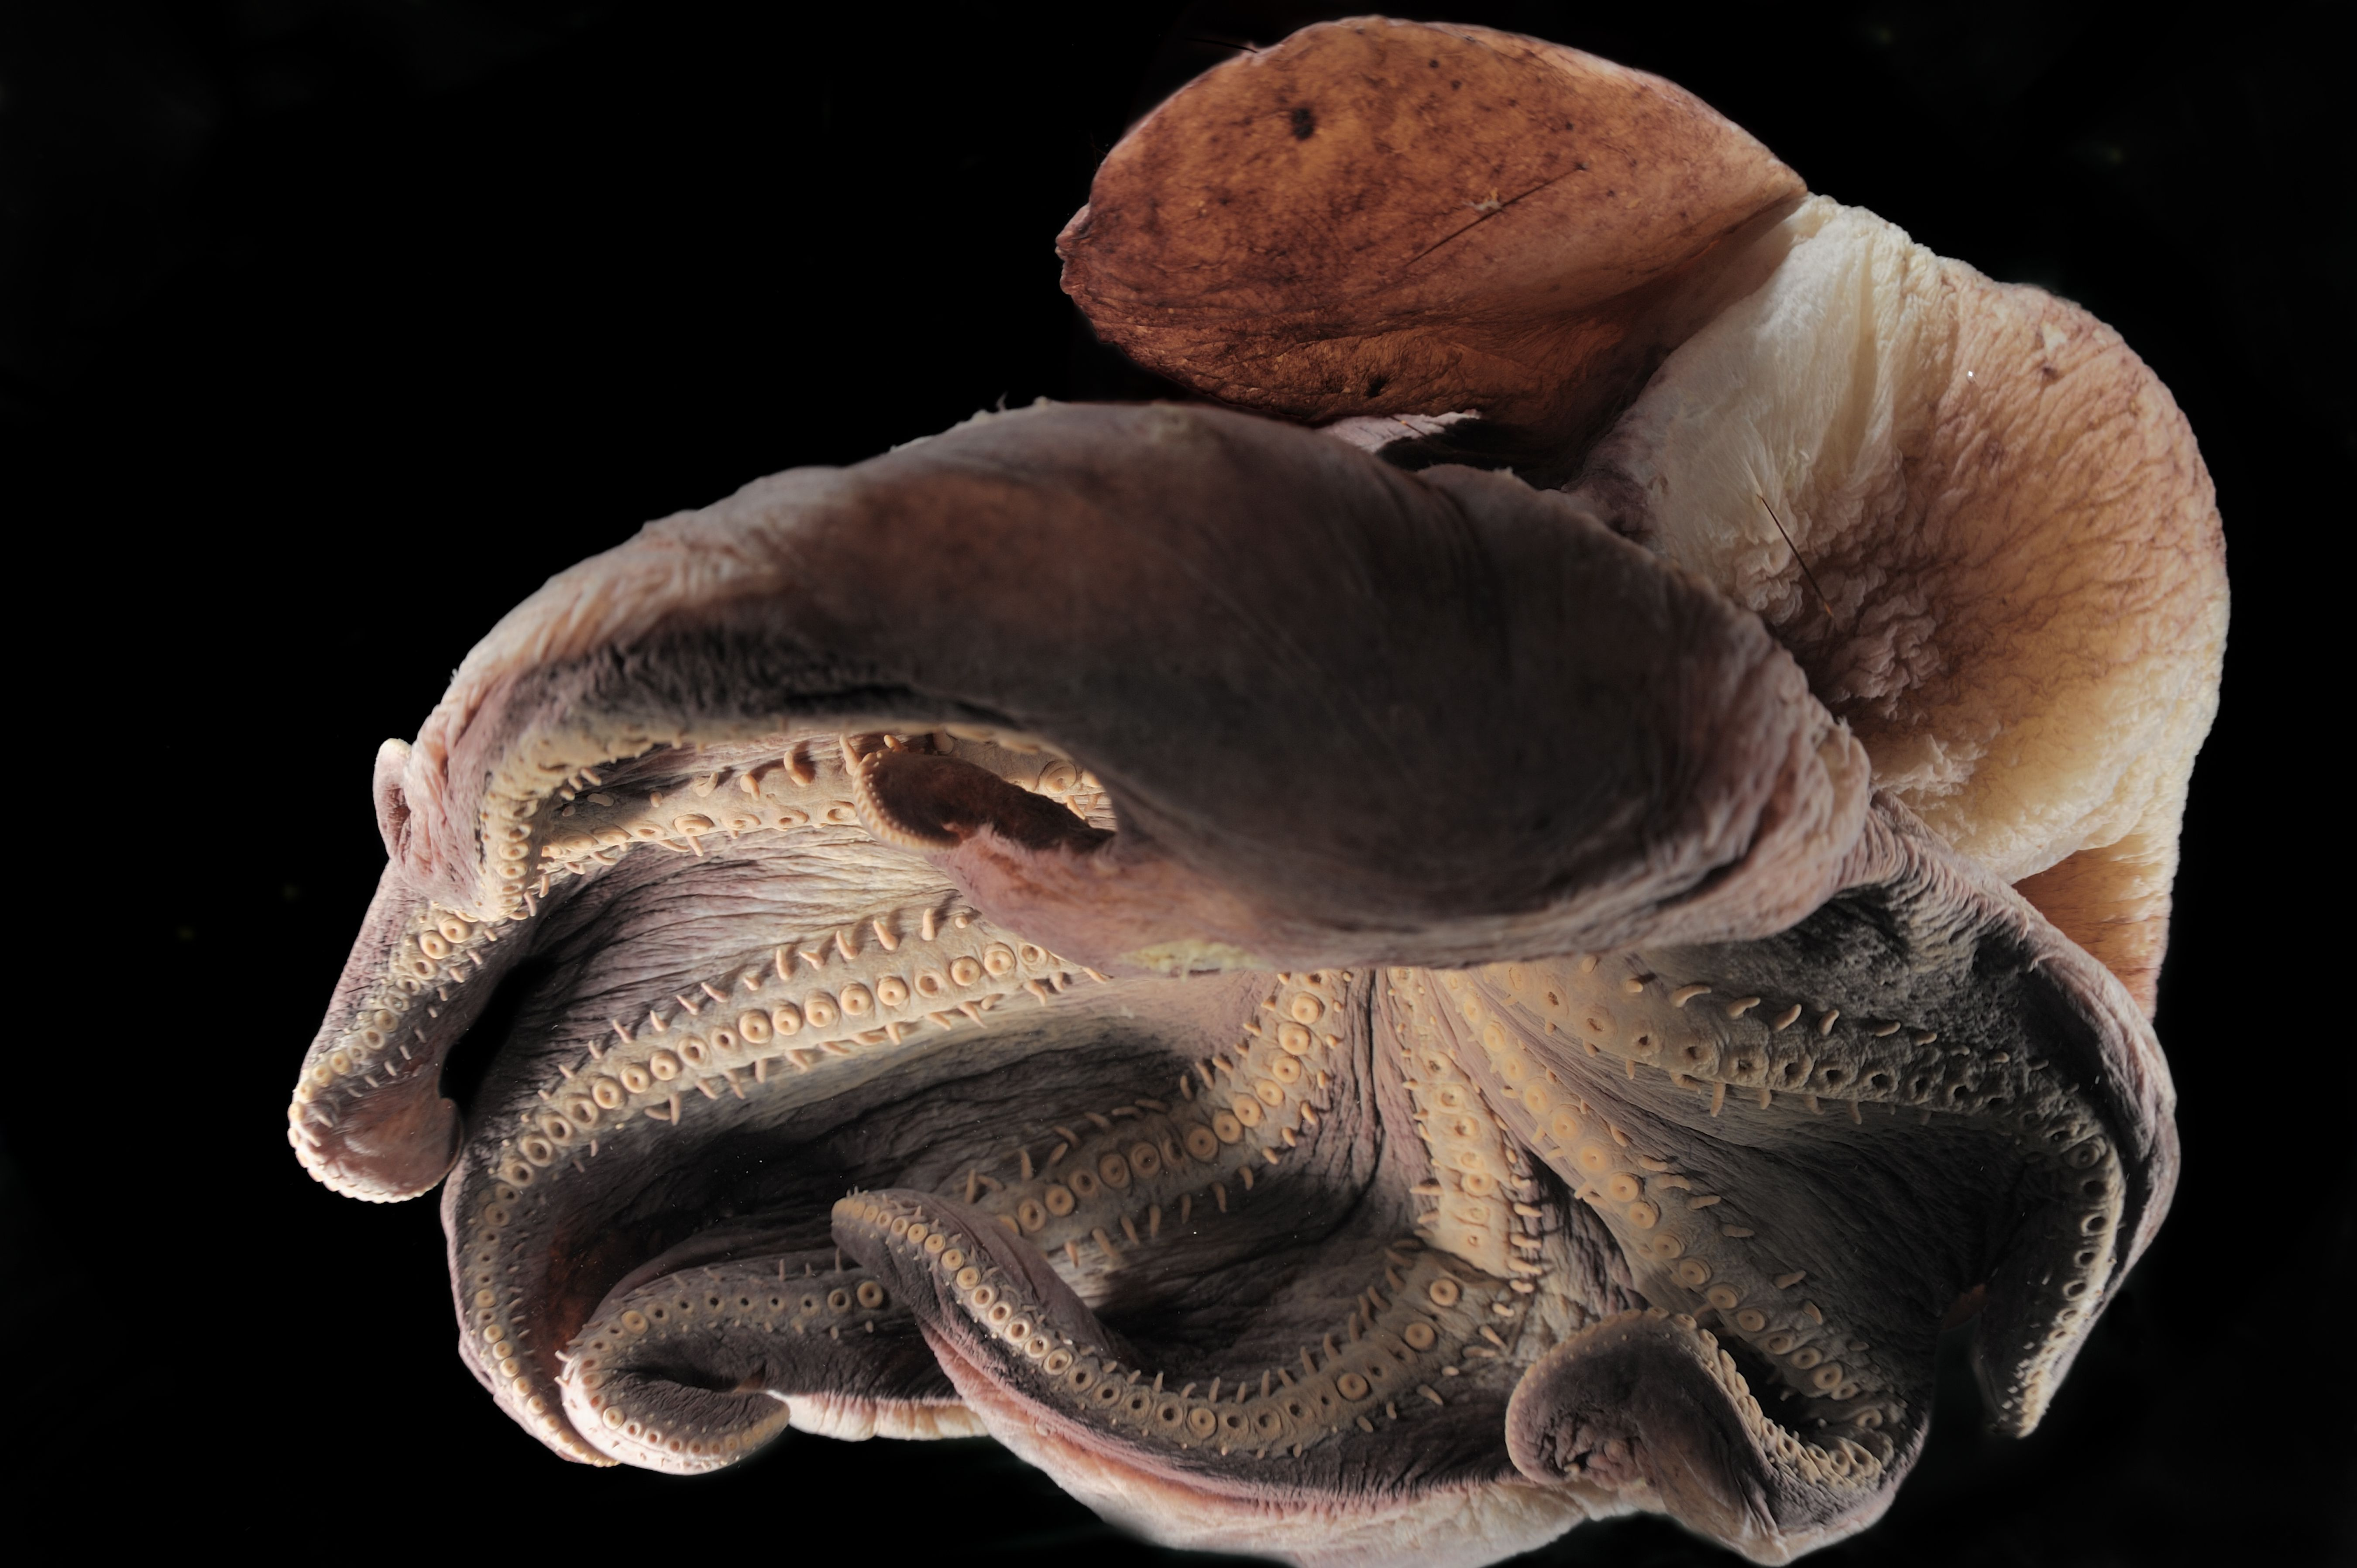 All About Grimpoteuthis, the Dumbo Octopus